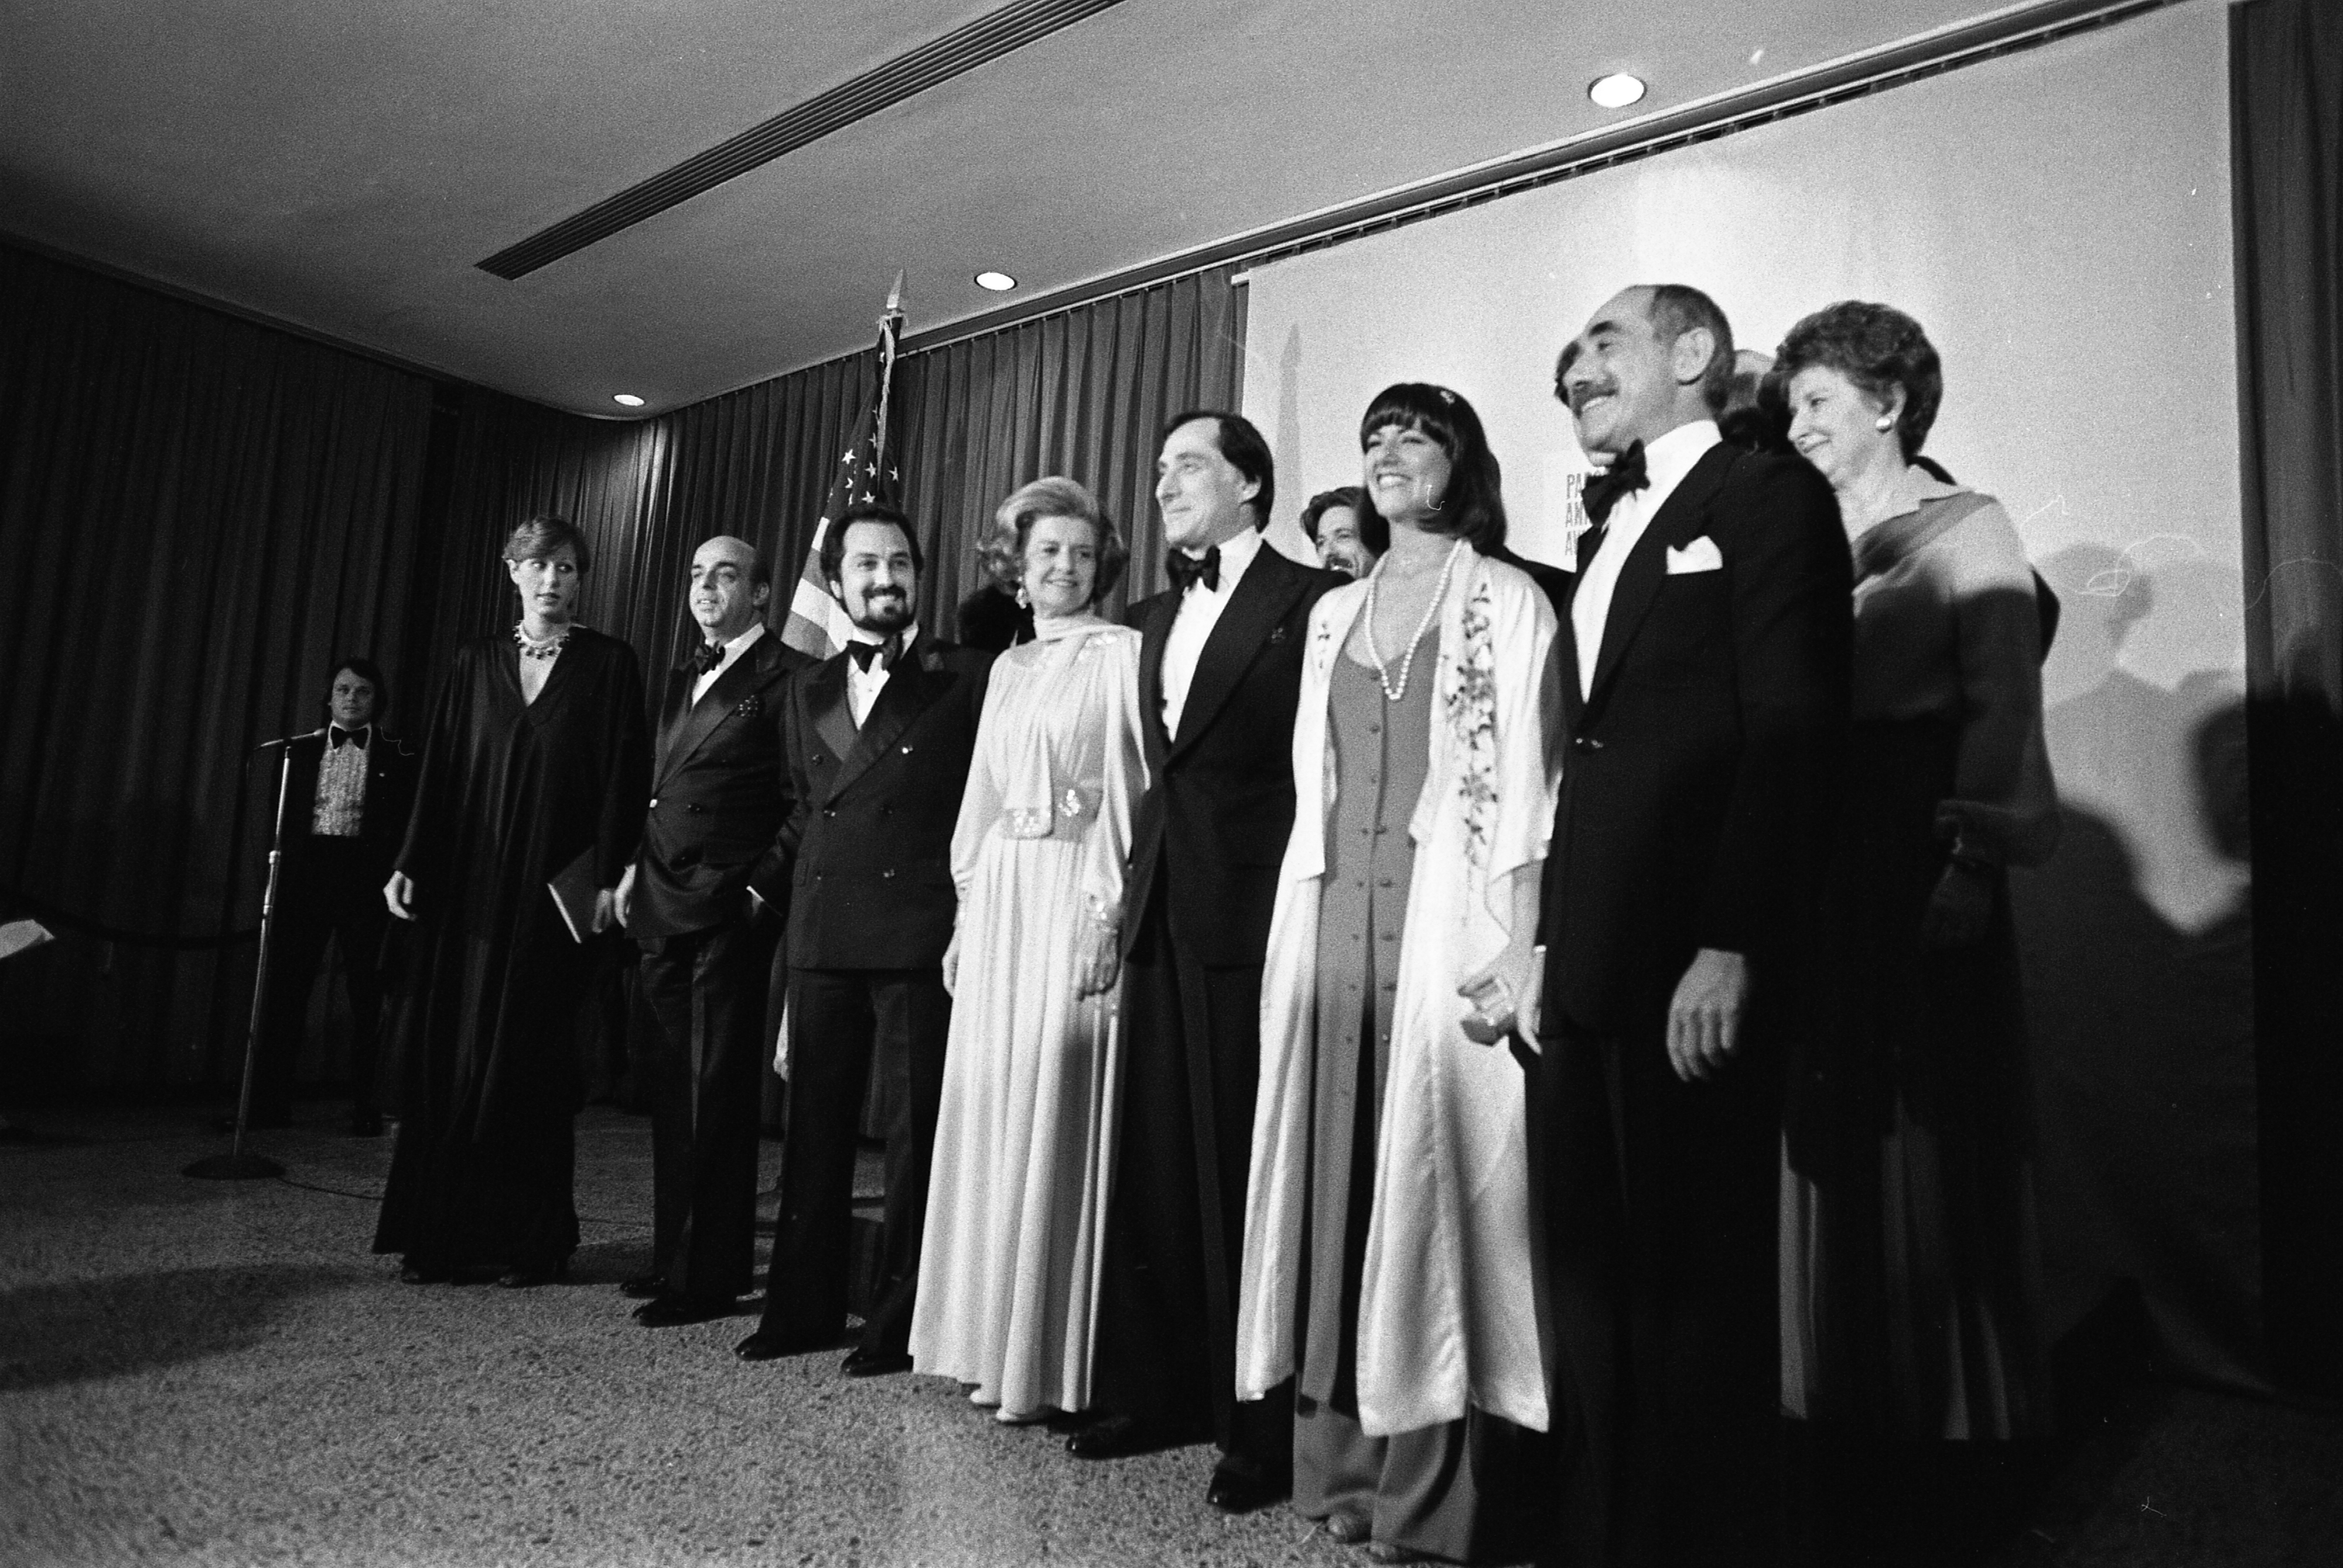 1976, March 29 – Parsons School of Design – New York, NY – Donna Karan, Donald Brooks, Albert Capraro, Betty Ford, Kasper, Kay Unger, Chester Weinberg; Liz Claiborne, Shannon Rodgers, Leo Narducci, Anthony Muto, Calvin Klein – Betty Ford standing with critics, fashion designers; formal wear – Parsons School of Design Fashion Critics Award Show and Dinner-First Lady Receves Parsons Award; Fashion Designers